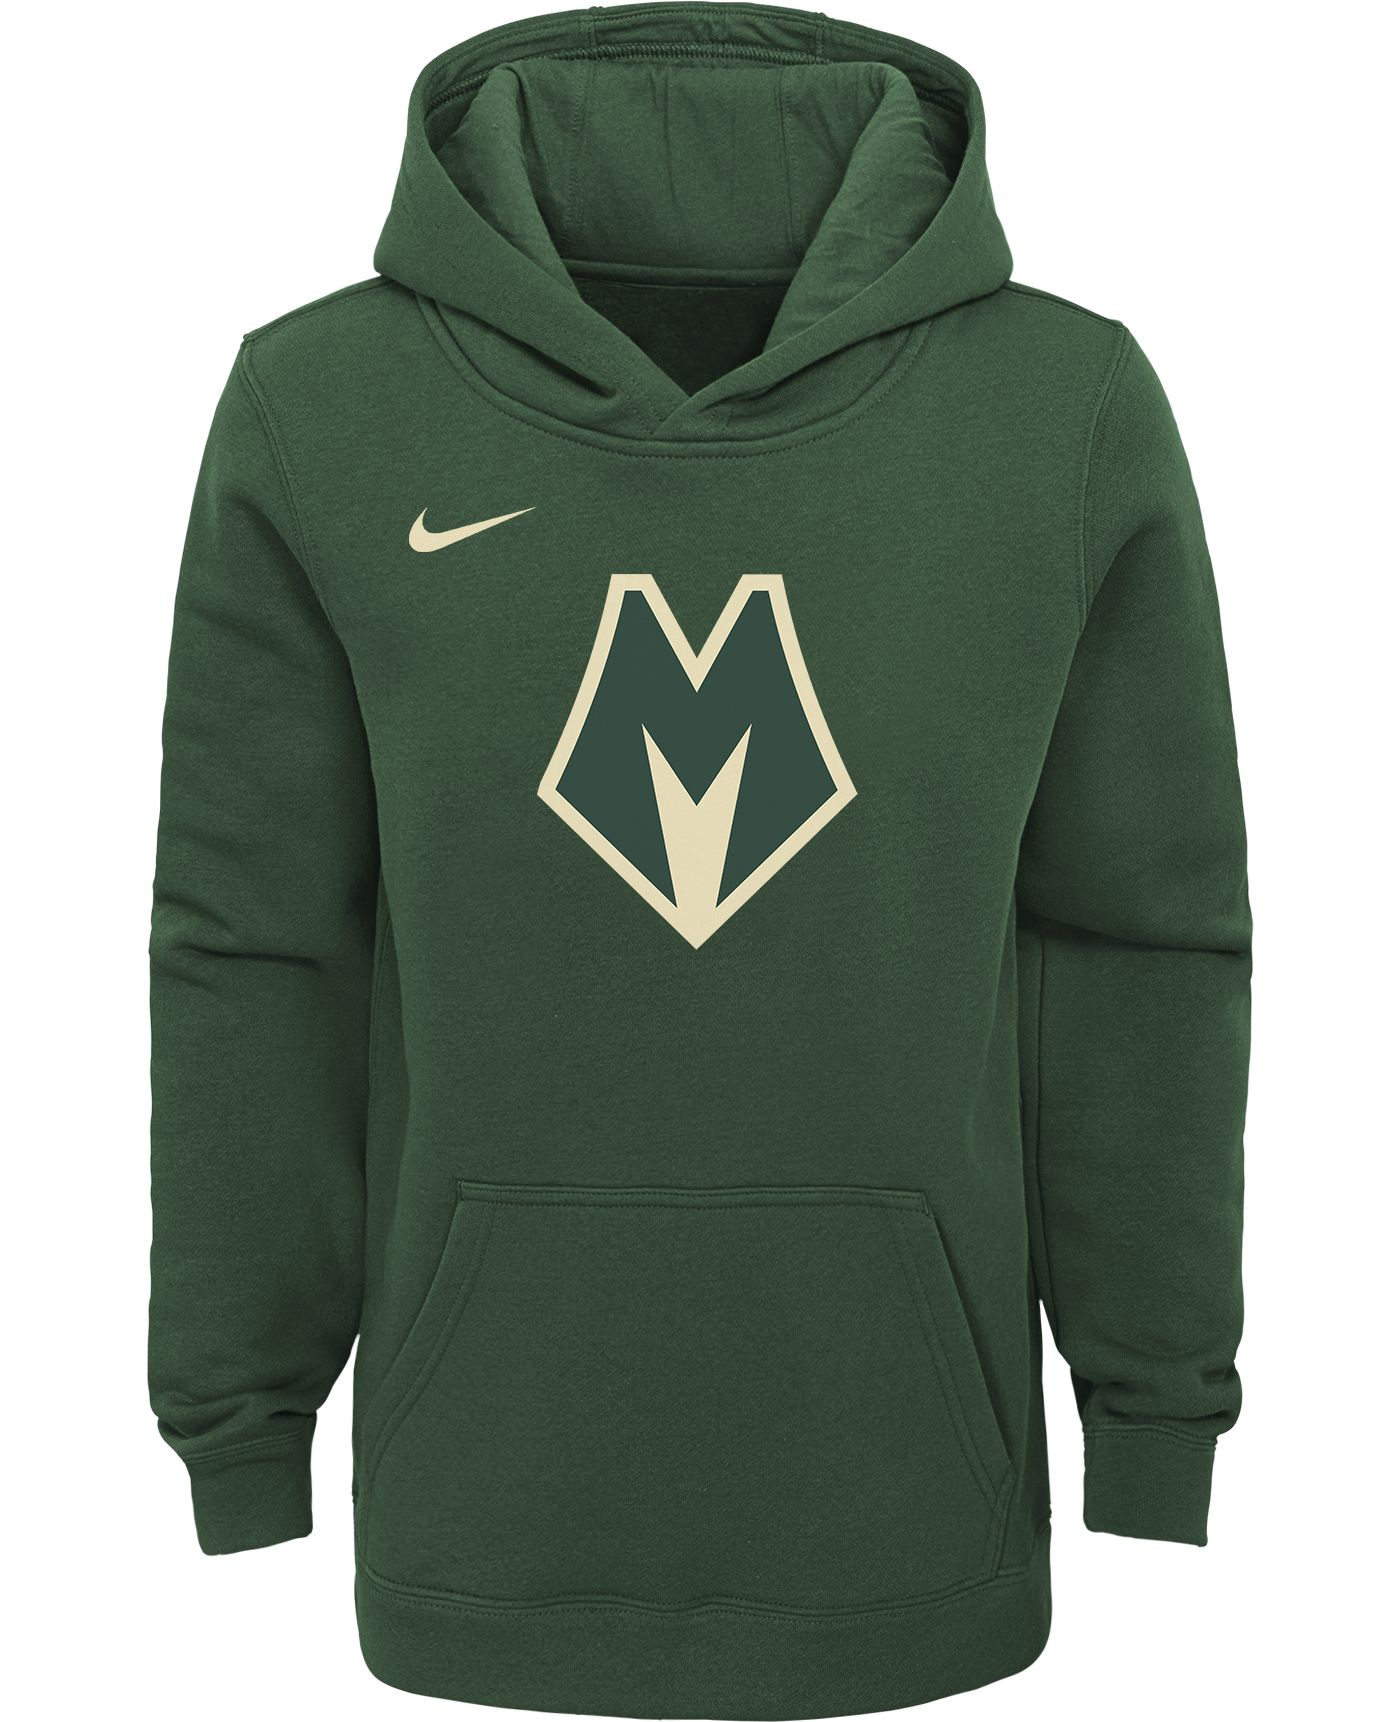 Nike Youth Milwaukee Bucks City Edition Green Hoodie